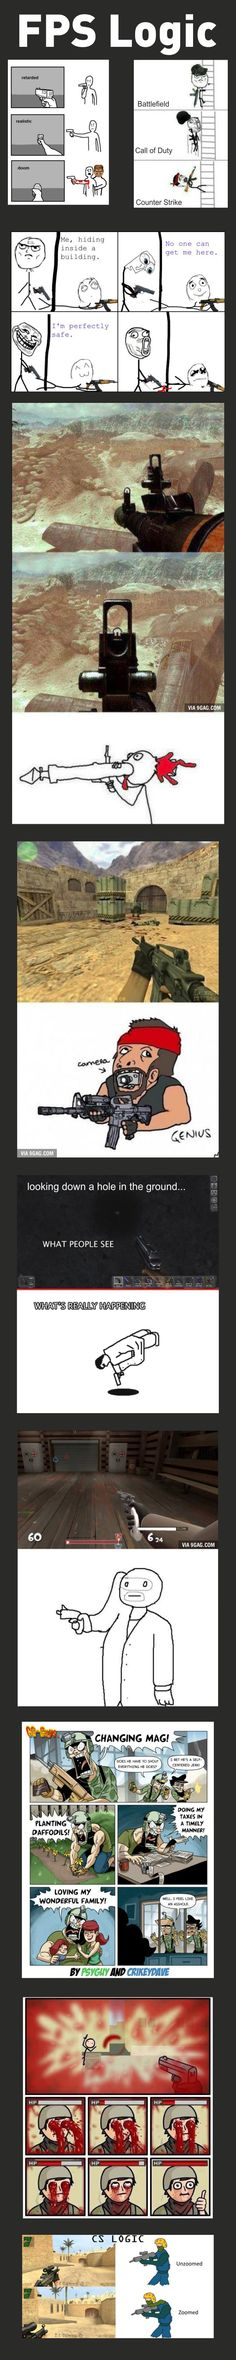 FPS Logic...omg these are all amazing #compartirvideos #funnypictures #uploadfunny https://www.youtube.com/channel/UCzp9KnuyG2b9jKnsCn2B4YQ